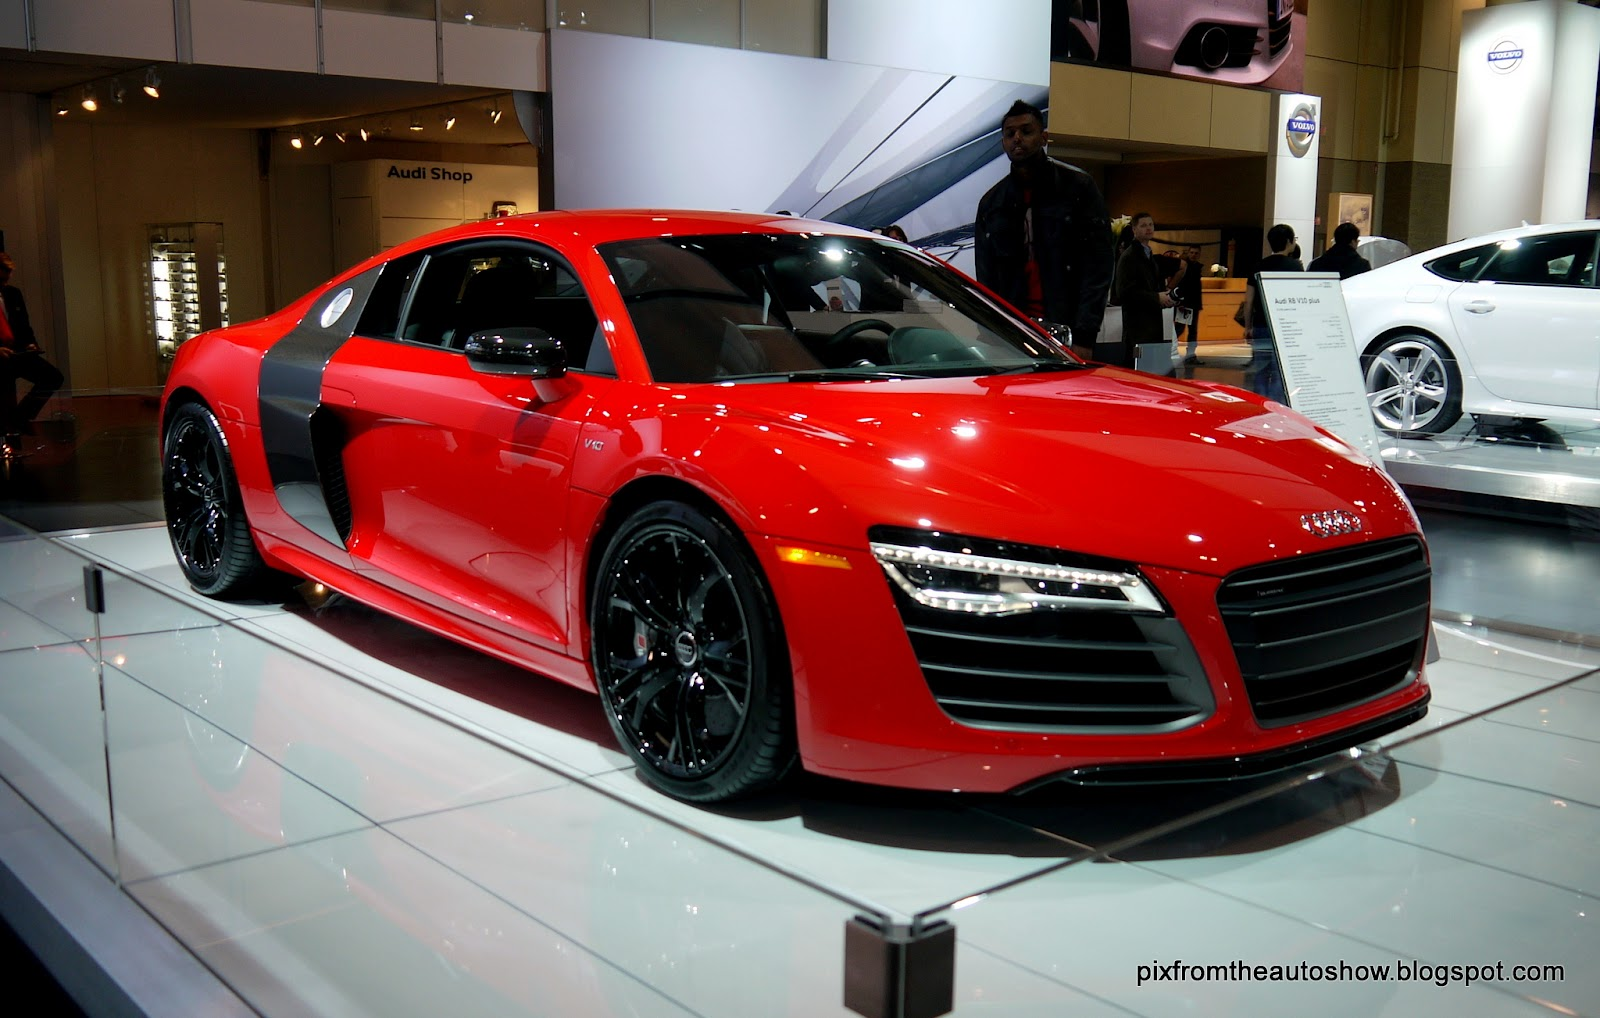 Here is the 2014 Audi R8 supercar with it's aggressive front and rear